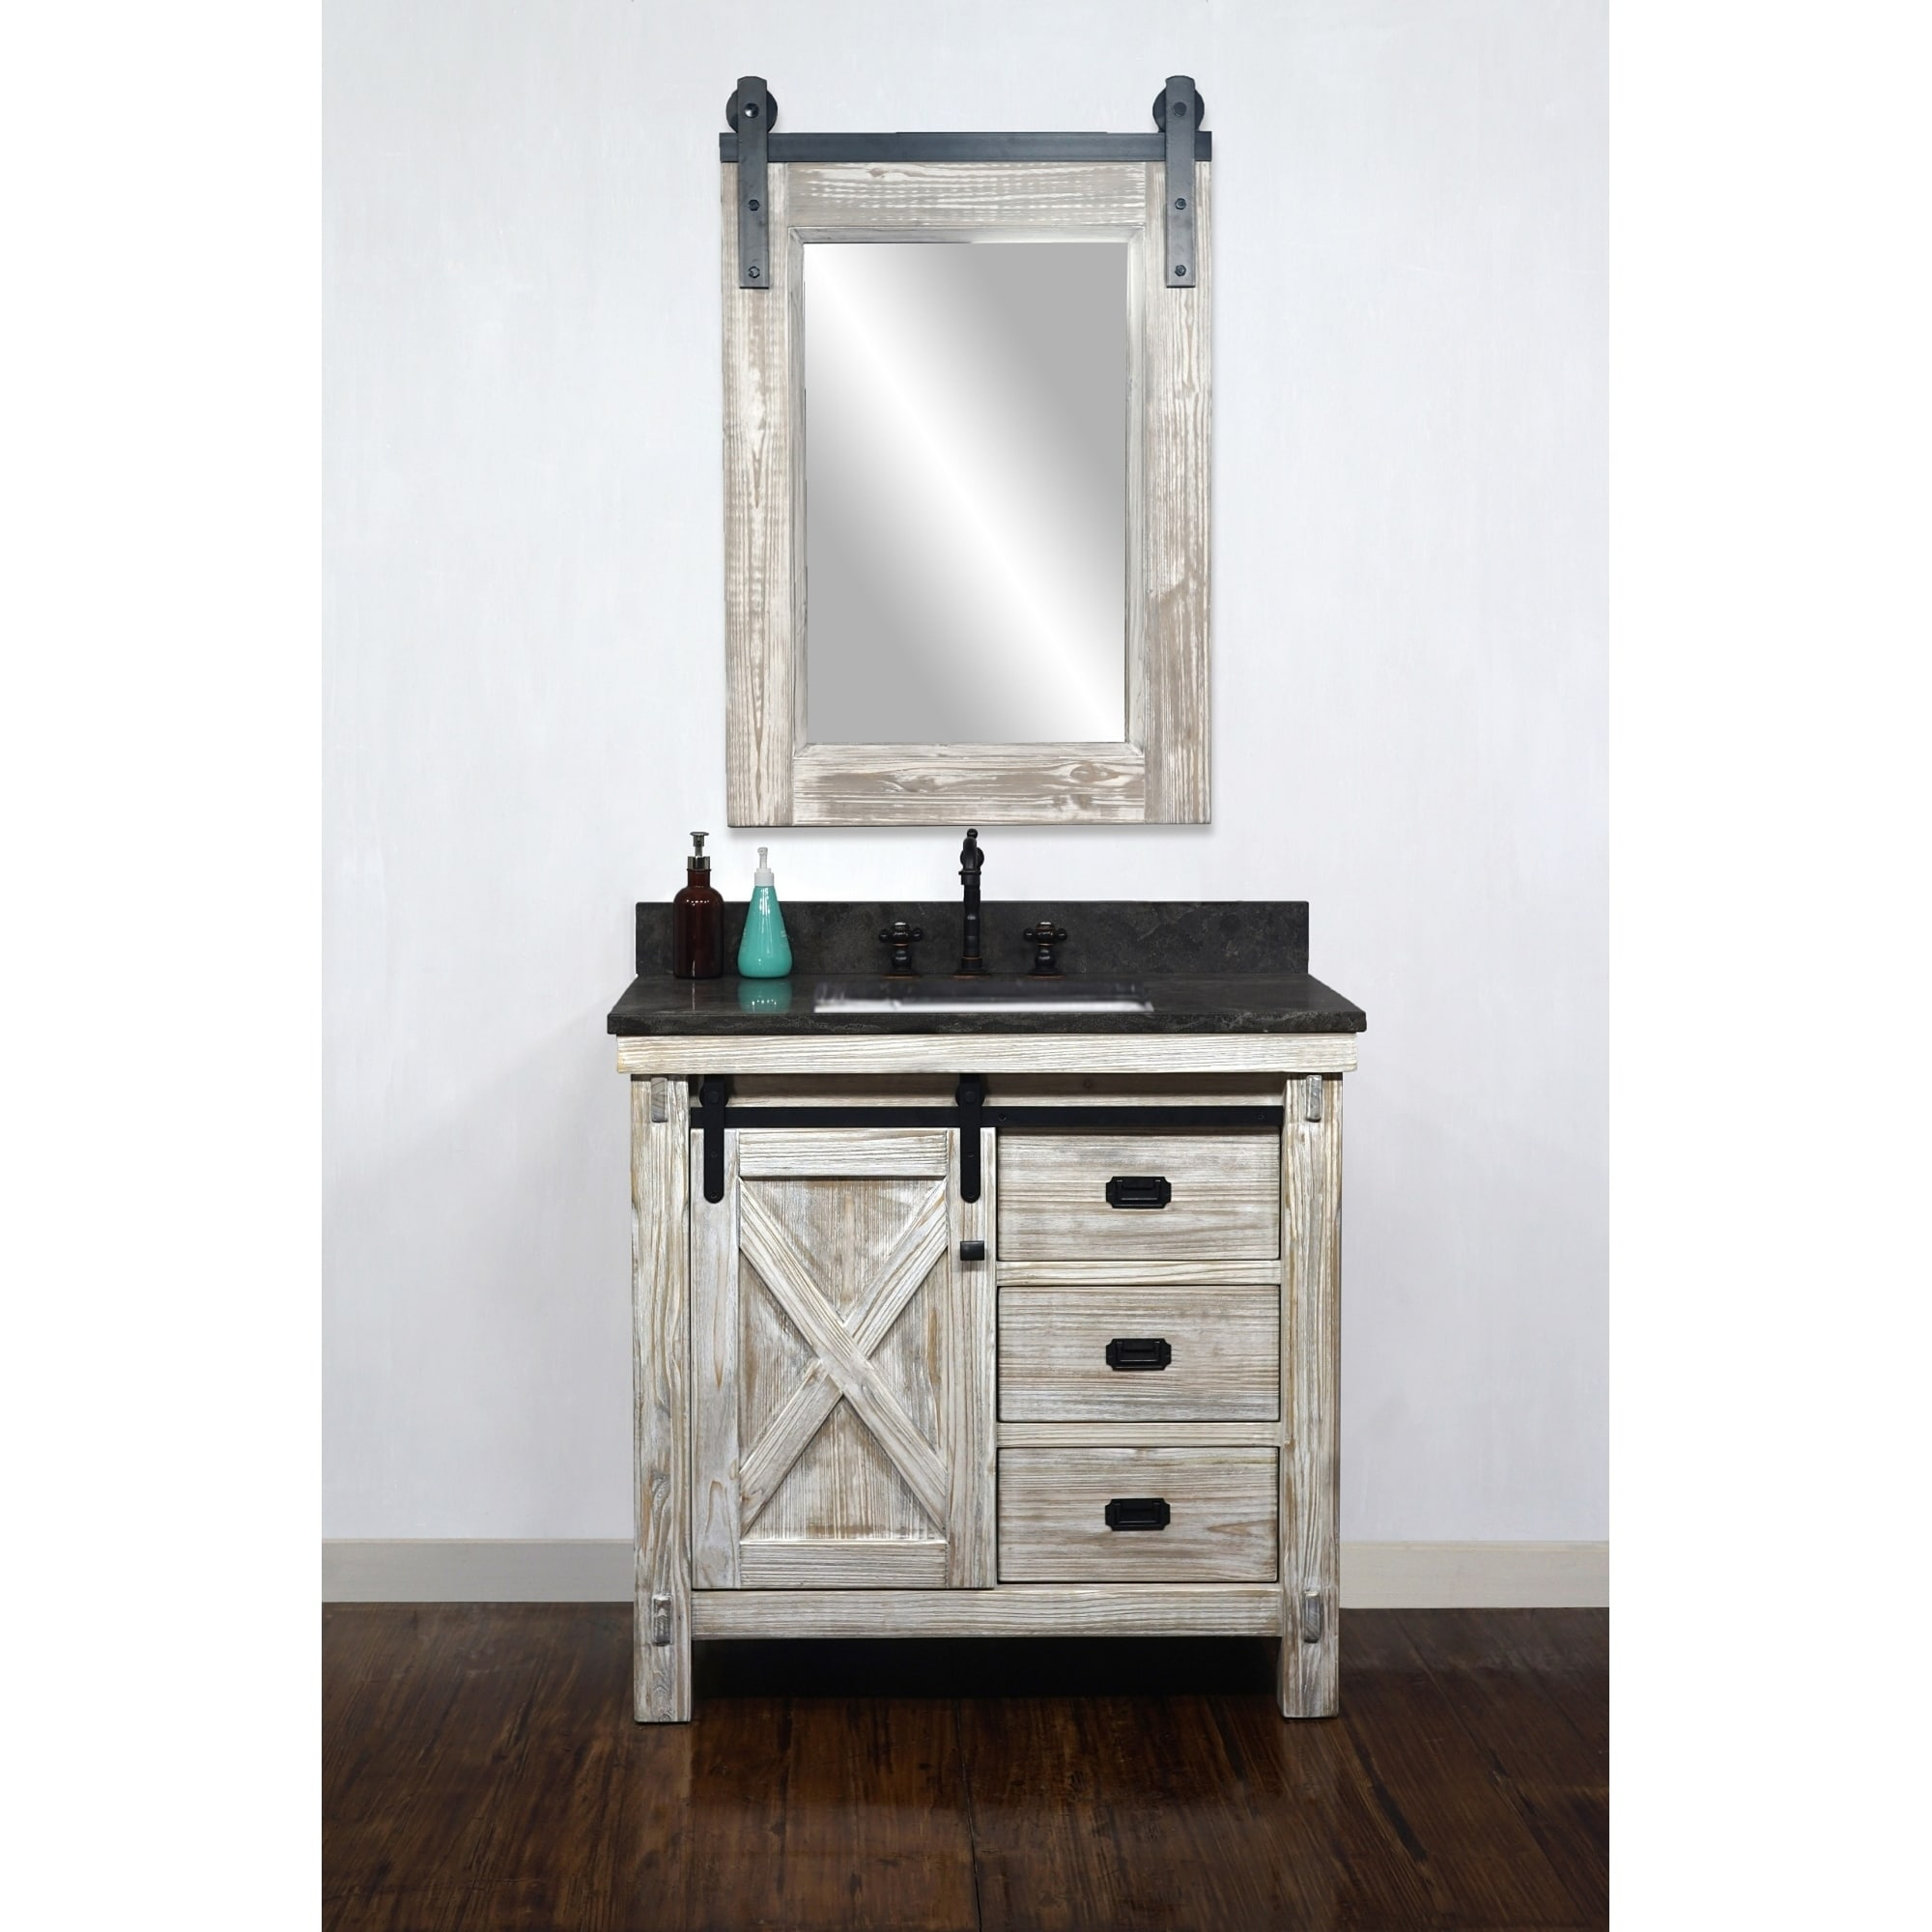 Shop Black Friday Deals On 37 Rustic Solid Fir Barn Door Style Single Sink White Wash Finish Vanity With Marble Or Granite Top No Faucet Overstock 29882552